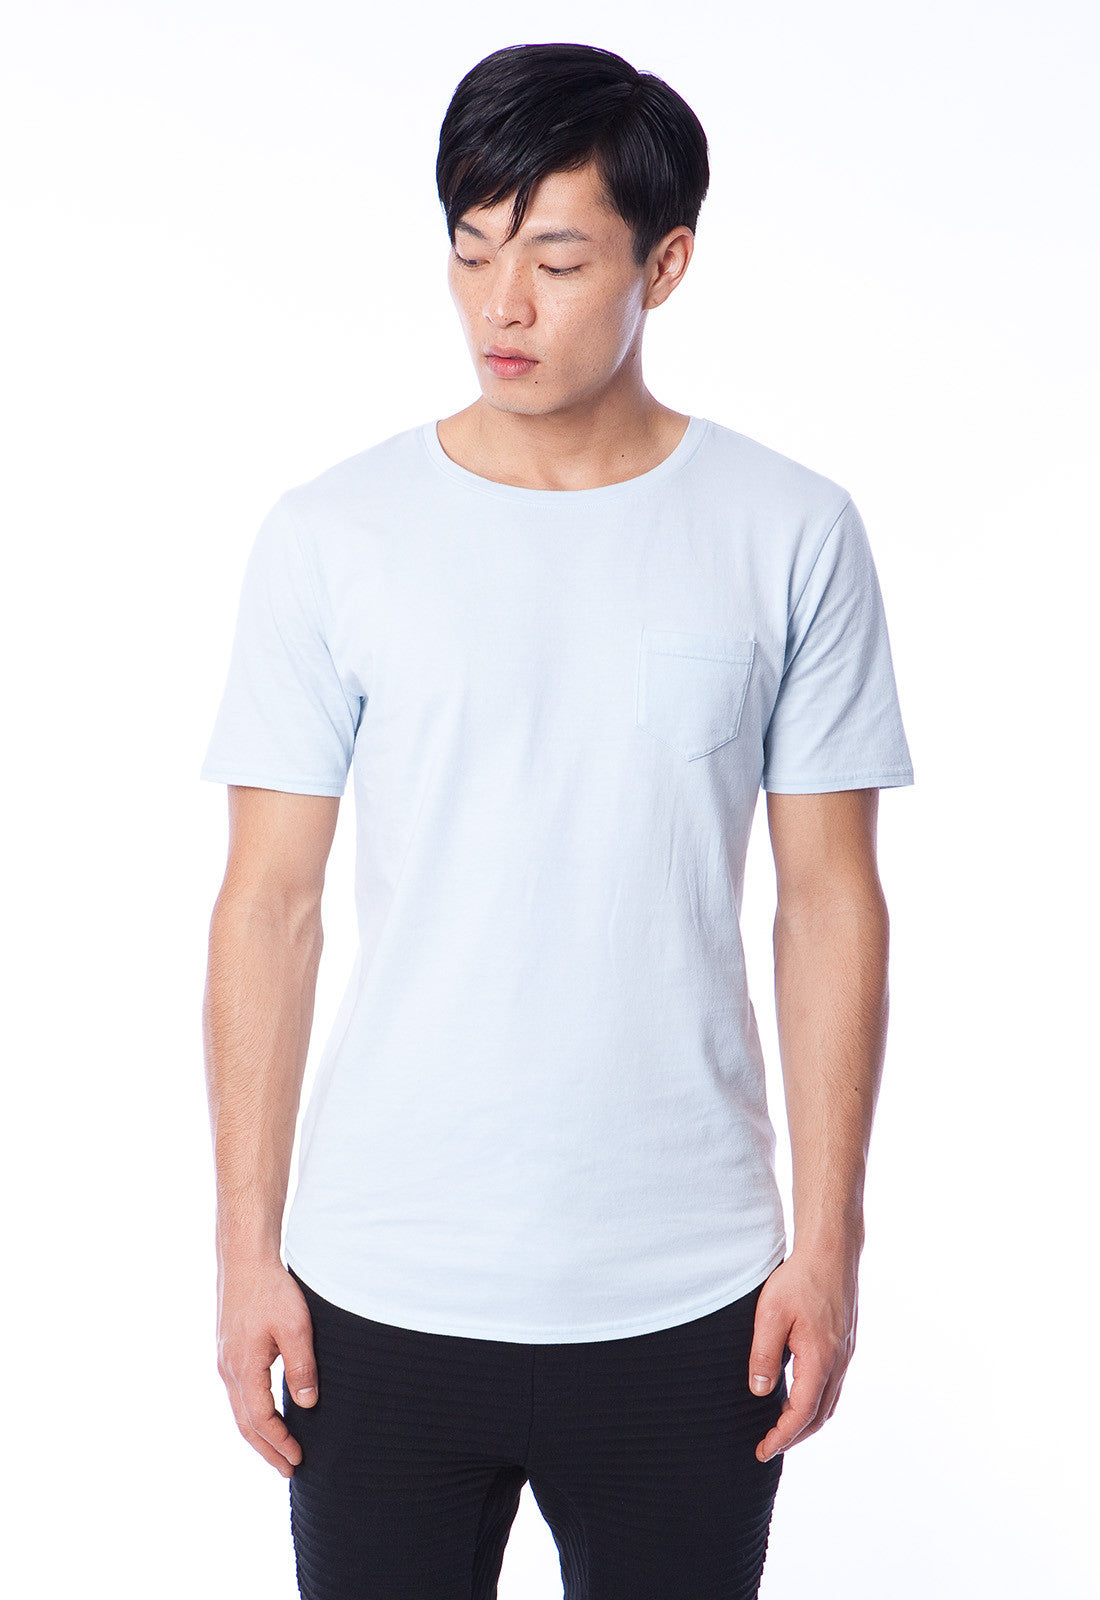 BOYD - T-SHIRT - WASHED INDIGO